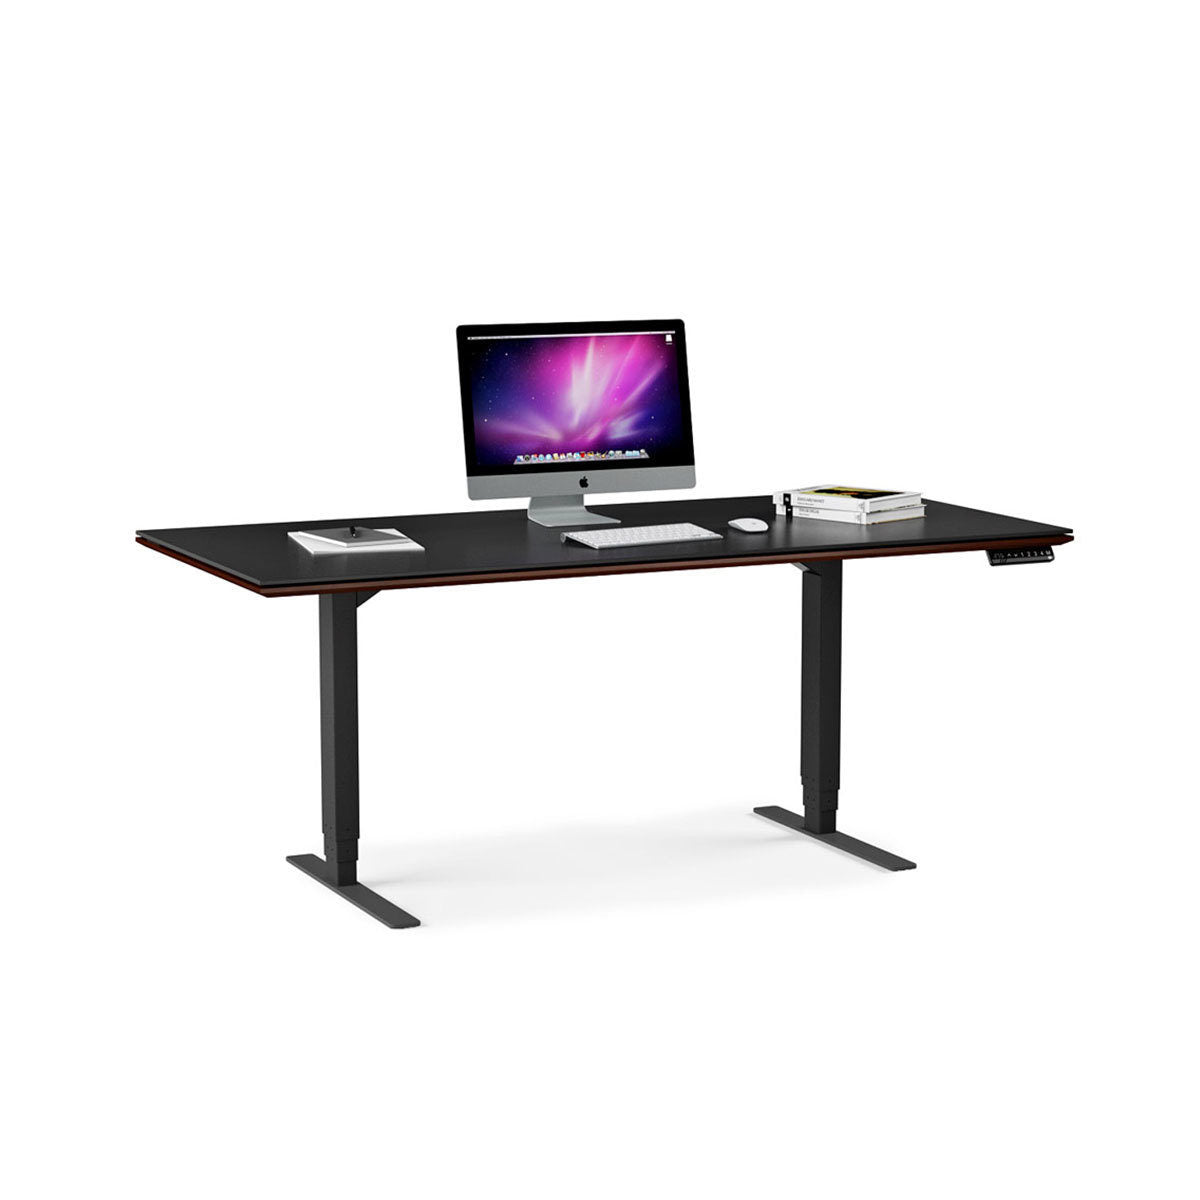 Sequel Lift Desk 30